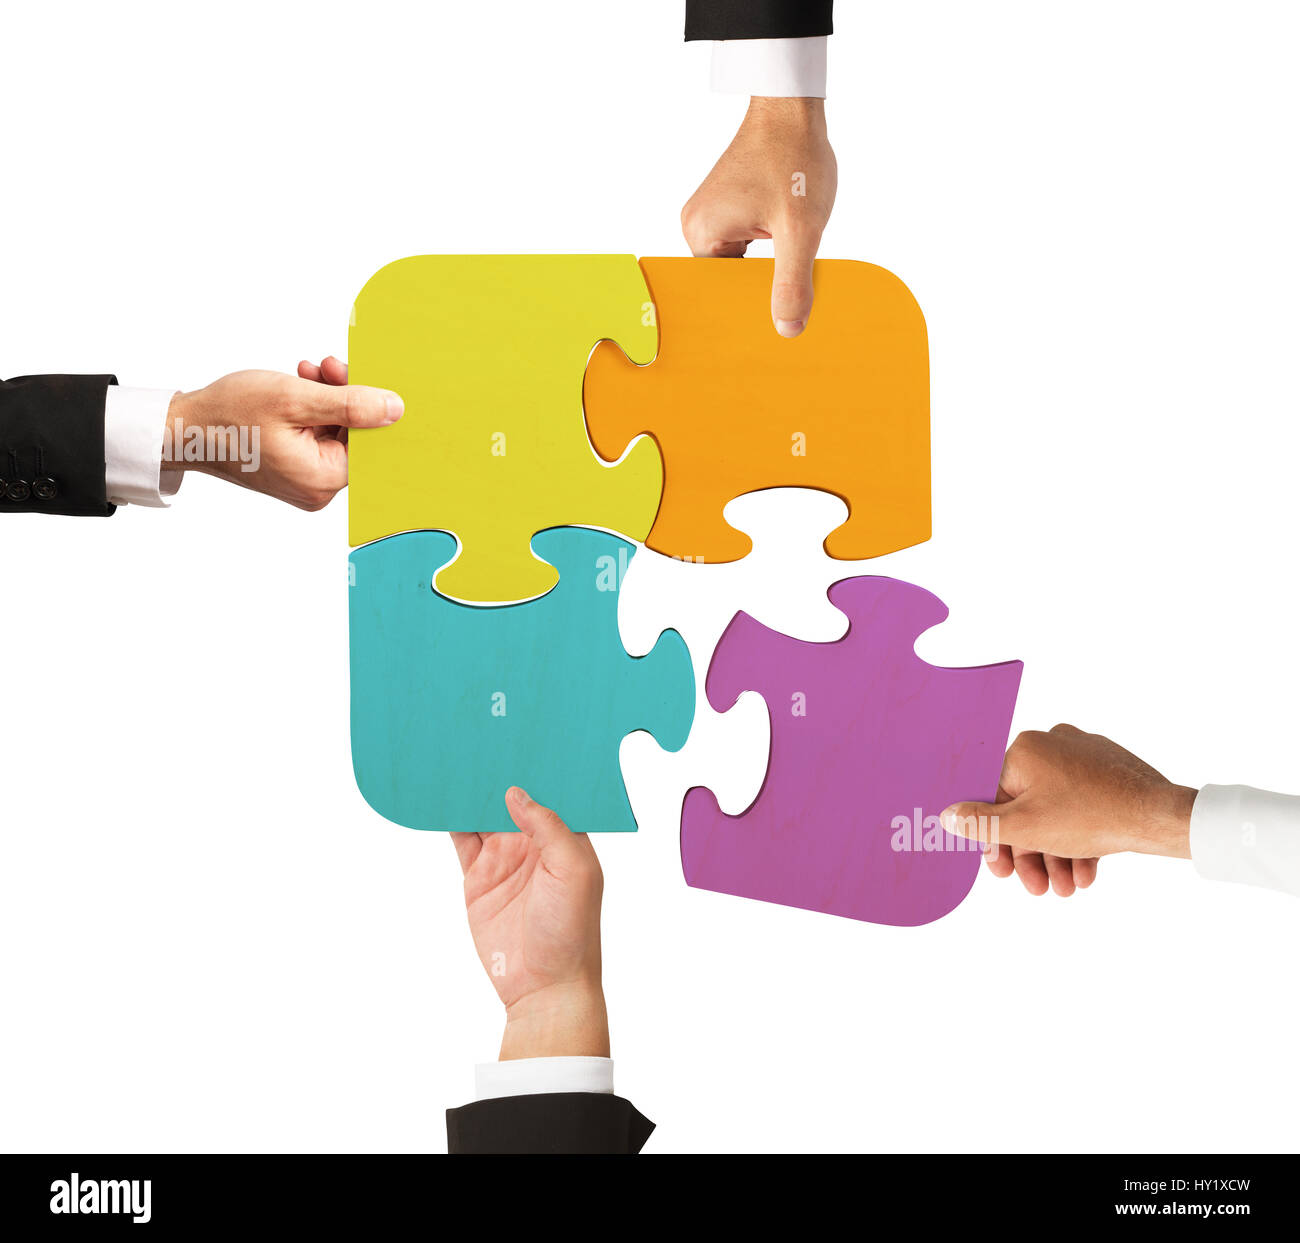 Team work for one goal - Stock Image